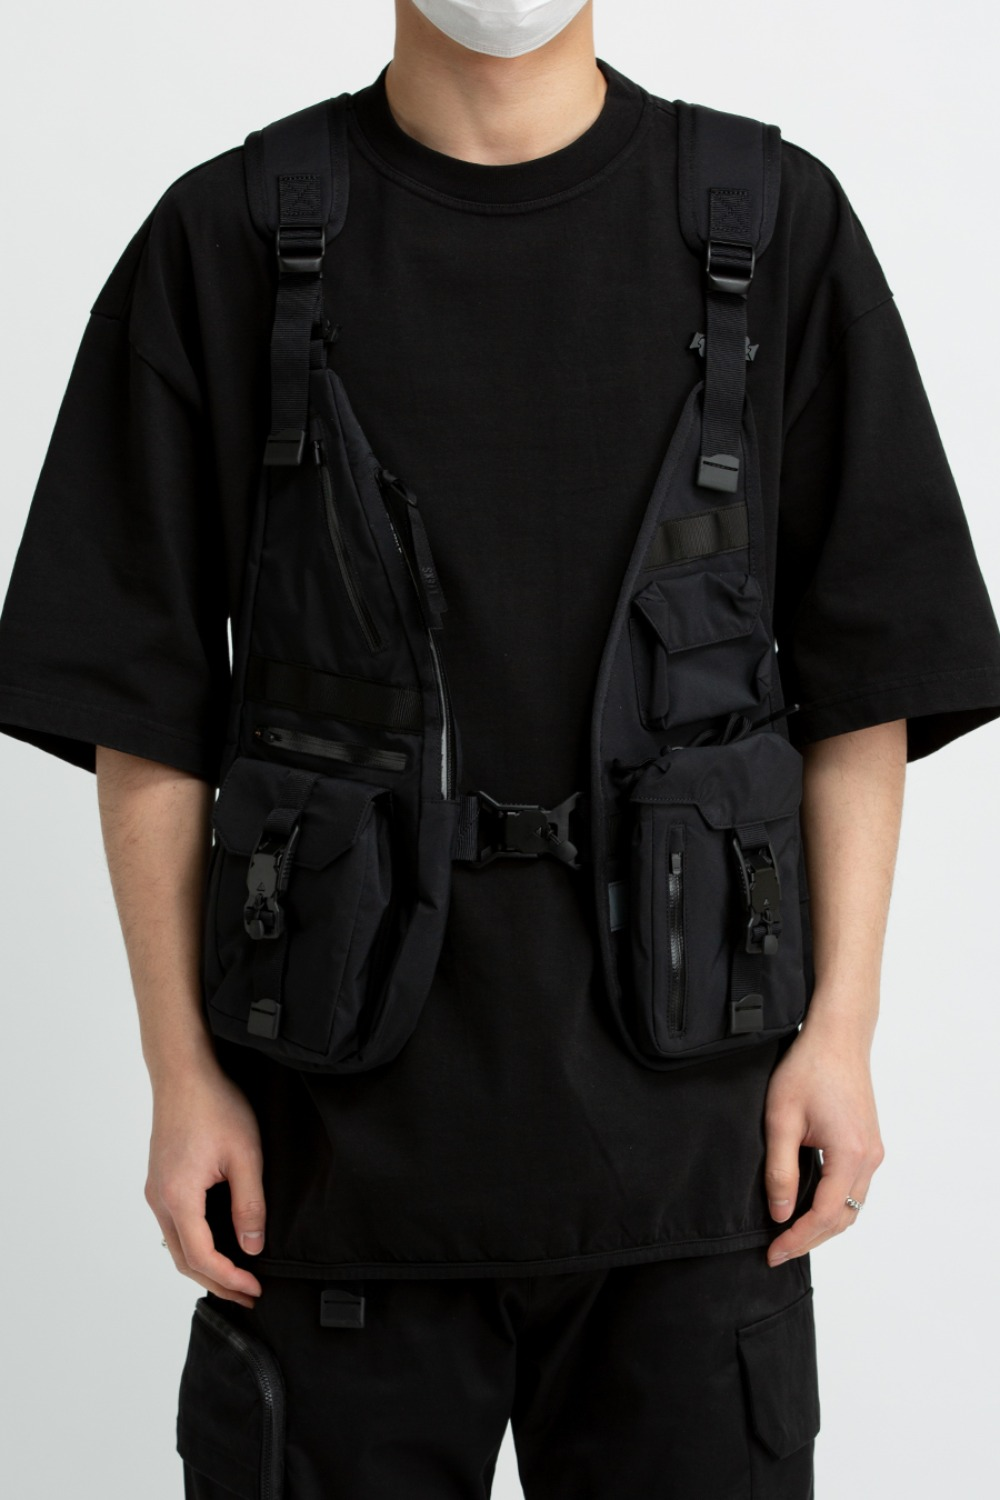 LOAD-OUT VEST(ZYVAX21004) BLACK